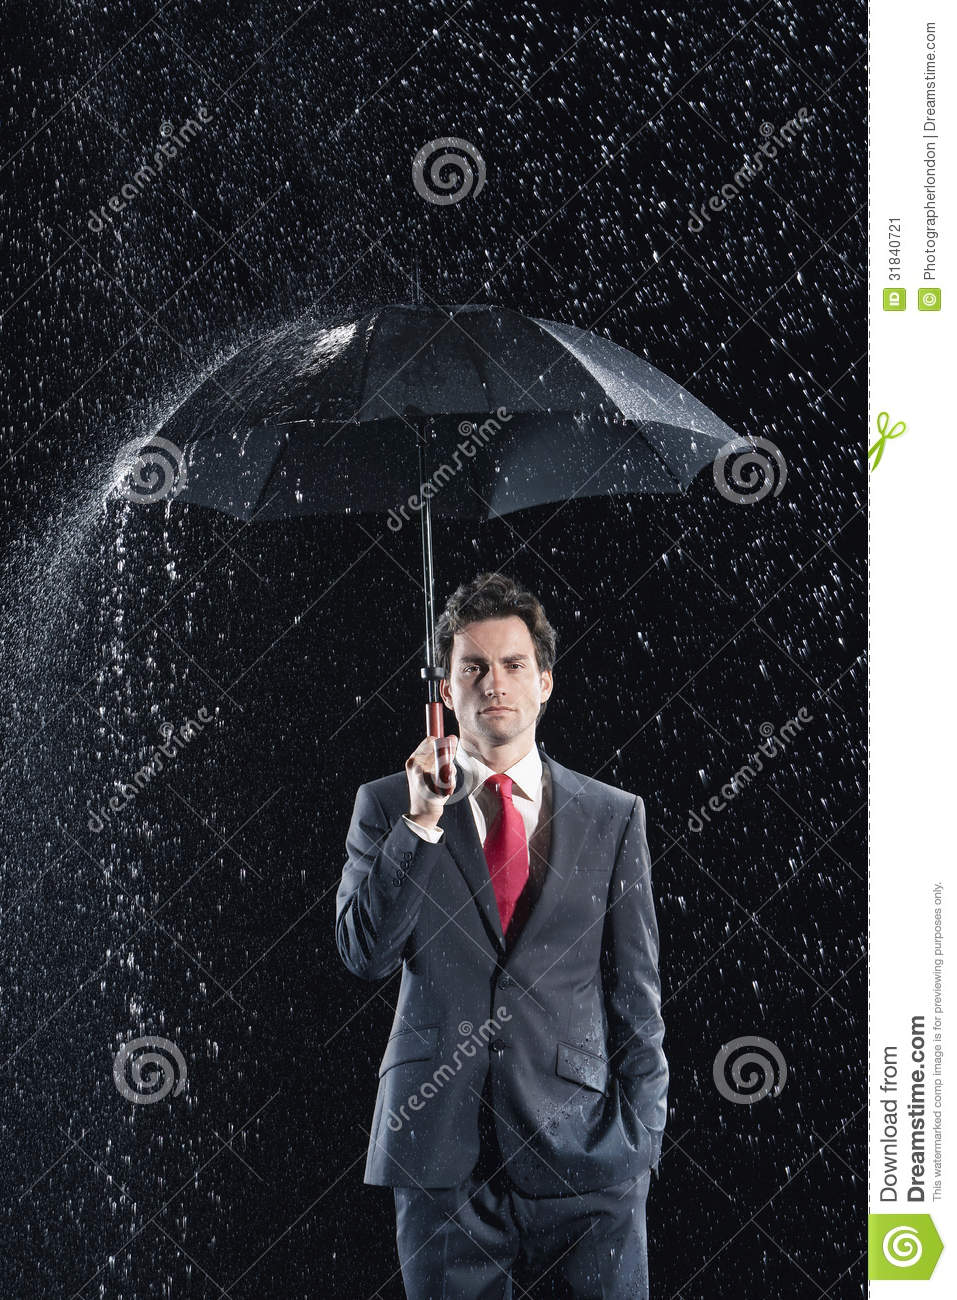 young businessman under umbrella in rain stock image